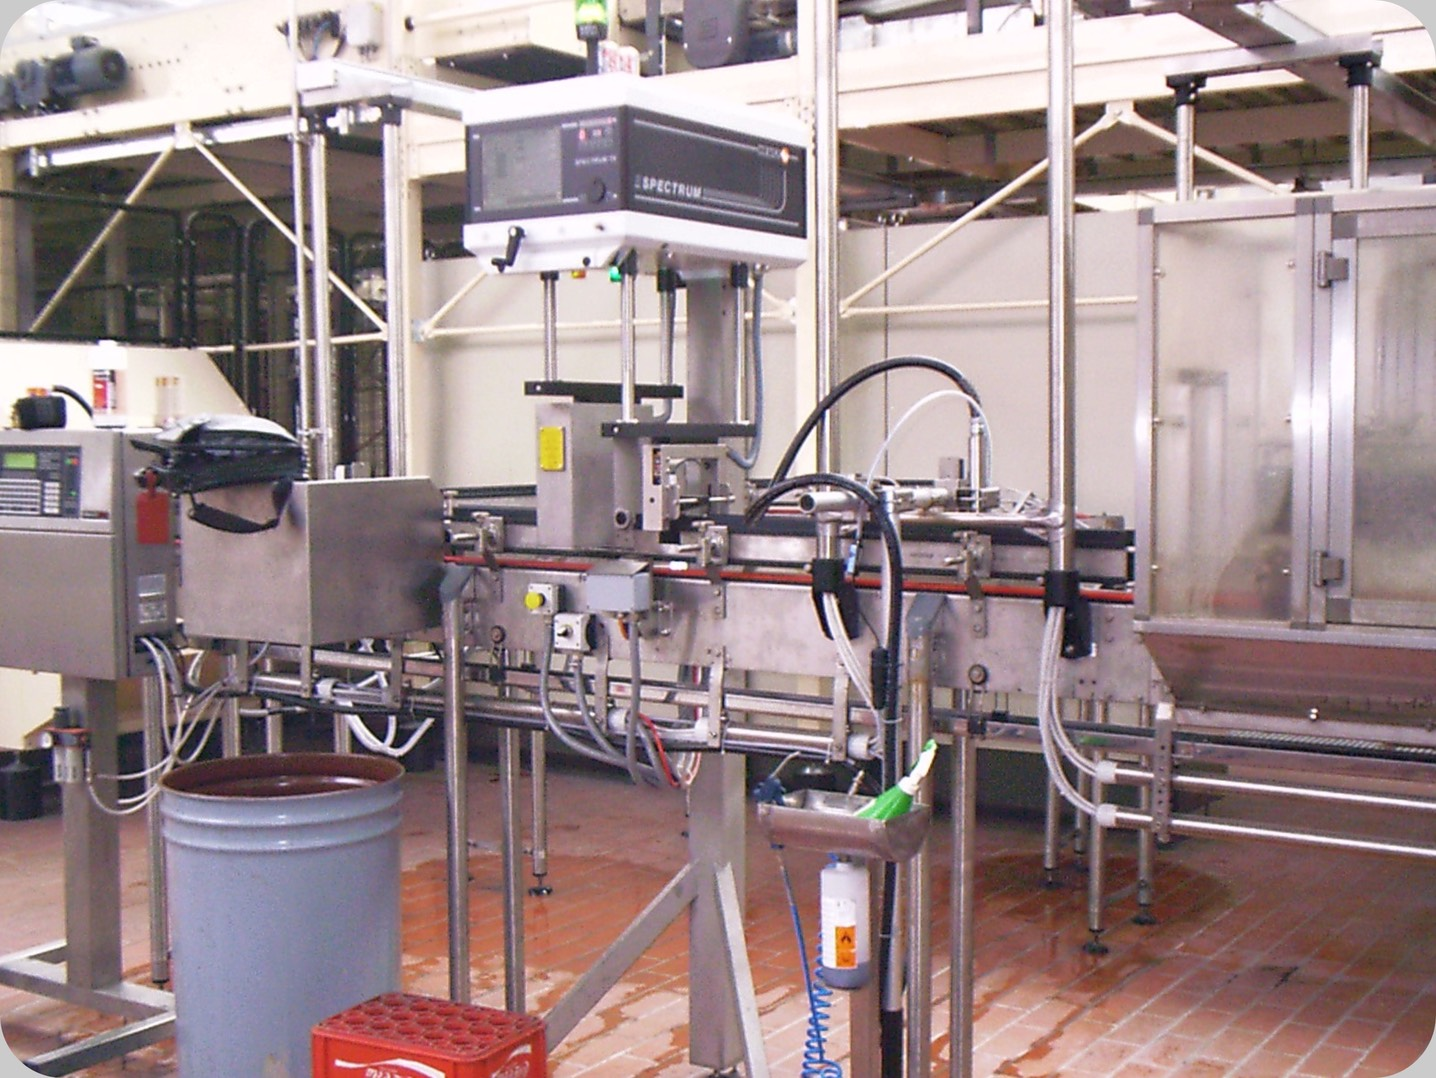 Full cans inspection in a Coca-Cola® Bottling Line. Here in the version with single X-ray fill level (single bridge) inspection.  Additionally, an inductive lid inspection searching for cans' micro holes.  changeover related to a new kind of bottle or can in a Full Container Inspector (e.g. Heuft®-built VX™ or basic™) operating standalone along the Conveyor, equipped with Fill level inspection (all kinds of technology: High Frequency, X-rays, IR, Laser), Label presence inspection with photoscanners:                                   Total:        98 €           98 $      changeover related to a new kind of bottle in a Full Bottle Inspector (e.g. Heuft®-built VX™ or basic™) operating with sensors in-the-Filler, -Labeller or -Closer Machine, equipped with Fill level inspection with all kinds of technology (High Frequency, X-rays, IR, Laser), Label presence inspection with photoscanners: Total:        195 €         138 £         195 $      changeover related to a new kind of bottle in a Full Bottle Inspector  (e.g. Heuft®-built VX™ or basic™)  operating standalone along the Conveyor, equipped with Cap inclination, height and cap presence inspections with camera, Fill level inspection with all kinds of technology (High Frequency, X-rays, IR, Laser): Total:        390 €        277 £          390 $      •    Смена формата бутылки или банки для инспектора наполненных контейнеров (н-р: Heuft® VX™ или basic™), работающего автономно при конвейере, оснащенного инспекцией уровня налива любой технологии (высокочастотной, рентгеновской, инфракрасной или лазерной) и контролем наличия этикетки фотосканерами:  Всего:      6300 рублей      •    Смена формата бутылки в инспекторе наполненных бутылок (н-р Heuft® VX™ или basic™), работающего в этикетировочной машине, оборудованного инспекцией уровня налива любой технологии (высокочастотной, рентгеновской, инфракрасной или лазерной) и контролем наличия этикетки фотосканерами:   Всего:      12538 рублей     •    Смена формата бутылки в инспекторе наполненных бутылок (н-р Heuft® VX™ или basic™), работающего автономно при конвейере,  оборудованного камерами для инспекции качества укупорки (наклон, высота и наличие крышки), инспекцией уровня налива:   Всего:      25077 рублей  heuft® basic™    cambio de calibre a nueva botelha en Inspector de Botellas Llenas (ejemplo, Heuft® VX™ u basic™), operativo standalone em transportador de botellas (o, latas), inspeccion presencia de tapa con sensor indutivo o fotoelectrico, inspeccion presencia de etiqueta y inspeccion de nível de llenado HF, rayos X, IR o Laser: Total:       98 €         98 $         A basic™ full bottle inspector we are here naming, here in the version with X-ray fill level bridge here in a Dairy Plant                                                                             cambio de calibre a nueva botelha en Inspector de Botellas Llenas (ejemplo, Heuft® VX™ u basic™), operativo con sensores en Llenadora, Tapadora o Etiquetadora para monitorizacion o inspeccion.  Inspeccion de presencia de tapa a traves de sensor fotoelectrico o inductivo, inspeccion de presencia de etiqueta y inspeccion de nível de llenado HF, rayos X, IR o Laser: Total:       195 €       195 $       cambio de calibre a nueva botelha en Inspector de Botellas Llenas (ejemplo, Heuft® VX™ u basic™), operativo standalone em transportador de botellas, inspeccion visual de boca con camara de Vision Artificial (presencia, inclinacion y altura), inspeccion de etiqueta mal puesta, inspeccion de nível de llenado HF, rayos X, IR o Laser, inspeccion presencia etiqueta con sensores fotoeléctricos: Total:       390 €       390 $       changement de format à nouvelle bouteille ou boites dans un Inspecteur de Bouteilles Pleine Heuft® Spectrum TX VX™ ou basic™, autonome le long du convoyeur, contrôle présence du bouchon ou couvercle avec capteur inductif ou photoélectrique, inspection du niveau de tous les technologies (Haute Frequence HF, rayons X, infrarouges IR ou laser): Total:        98 €         98 $      changement de format à nouvelle bouteille ou boites dans un Inspecteur de Bouteilles Pleine Heuft® Spectrum TX VX™ ou basic™, operatif avec capteurs pour monitorer la Soutireuse et la Boucheuse, contrôle présence du bouchon ou couvercle avec capteur inductif ou photoélectrique, inspection du niveau de tous les technologies (Haute Frequence HF, rayons X, infrarouges IR ou laser): Total:        195 €       195 $      changement de format à nouvelle bouteille ou boites dans un Inspecteur de Bouteilles Pleine Heuft® Spectrum TX VX™ ou basic™,  autonome le long du convoyeur, contrôle présence et inclination du bouchon ou couvercle avec video camera, inspection du niveau de tous les technologies (Haute Frequence HF, rayons X, infrarouges IR ou laser): Total:       390 €       390 $     cambio formato a nova garrafa ou lata em Inspetor de Garrafas Cheias (exemplo, Heuft® VX™ ou basic™) operativo standalone em transportador de garrafas (ou, latas), inspeçao de nível de enchimento com alta frequência HF, raios X, infravermelho ou Laser, presença de tampa (sensor fotoelétrico ou indutivo) e inspeçao da etiqueta ou rotulo (sensor fotoelétrico): Total:       98 €       195 $            cambio formato a nova garrafa em Inspetor de Garrafas Cheias (exemplo, Heuft® VX™ ou basic™) operativo com sensores para monitorizaçao na Enchedora, na Tampadora ou Rotuladora, inspeçao de nível de enchimento com alta frequência HF, raios X, infravermelho ou Laser, inspeçao presença de tampa (sensor fotoelétrico ou indutivo) e inspeçao de etiqueta/rotulo (sensor fotoelétrico):           Total:     195 €      195 $                                  Full cans inspection in a Coca-Cola® Bottling Line. Here in the version with single X-ray fill level (single bridge) inspection.  Additionally, an inductive lid inspection searching for cans' micro holes cambio formato a nova garrafa em Inspetor de Garrafas Cheias (exemplo, Heuft® VX™ ou basic™) operativo standalone em transportador de garrafas, inspeção de tampa inclinada, alta ou ausente com camara de Visao Artificial, inspeçao de nível de enchimento com alta frequência HF, raios X, infravermelho ou Laser e inspeçao da etiqueta/rotulo (sensor fotoelétrico):     Full cans inspection in a Coca-Cola™ Iberian partners  Bottling Line. Here in the version with single X-ray fill level (single bridge) inspection.  Additionally, an inductive lid inspection searching for cans' micro holes                      Total:     390 €      390 $                    cambio formato a nuova bottiglia o lattina in un Ispettore Bottiglie Piene (ad esempio, Heuft® VX™ or basic™) operante standalone lungo il nastro trasportatore, equipaggiato con ispezione livello (tecnologie alta frequenza HF, raggi-X, IR o Laser) ed ispezione presenza etichetta attraverso fotoscanners: Totale:      98 €         cambio formato a nuova bottiglia in un Ispettore Bottiglie Piene (ad esempio, Heuft® VX™ or basic™) operante con sensori nella Riempitrice e nel Tappatore per il monitoraggio delle valvole e dei pistoni tappanti, equipaggiato di ispezione livello di qualsiasi tecnologia (alta frequenza HF, raggi-X, infrarossi o Laser) ed ispezione presenza etichetta attraverso fotoscanners: Totale:      195 €     cambio formato a nuova bottiglia in un Ispettore Bottiglie Piene (ad esempio, Heuft® VX™ or basic™), operante standalone lungo il trasporto, equipaggiato di singola telecamera per ispezione capsula inclinata, troppo alta o mancante e di ispezione livello di qualsiasi tecnologia (alta frequenza HF, raggi-X, IR, Laser): Totale:      390 €